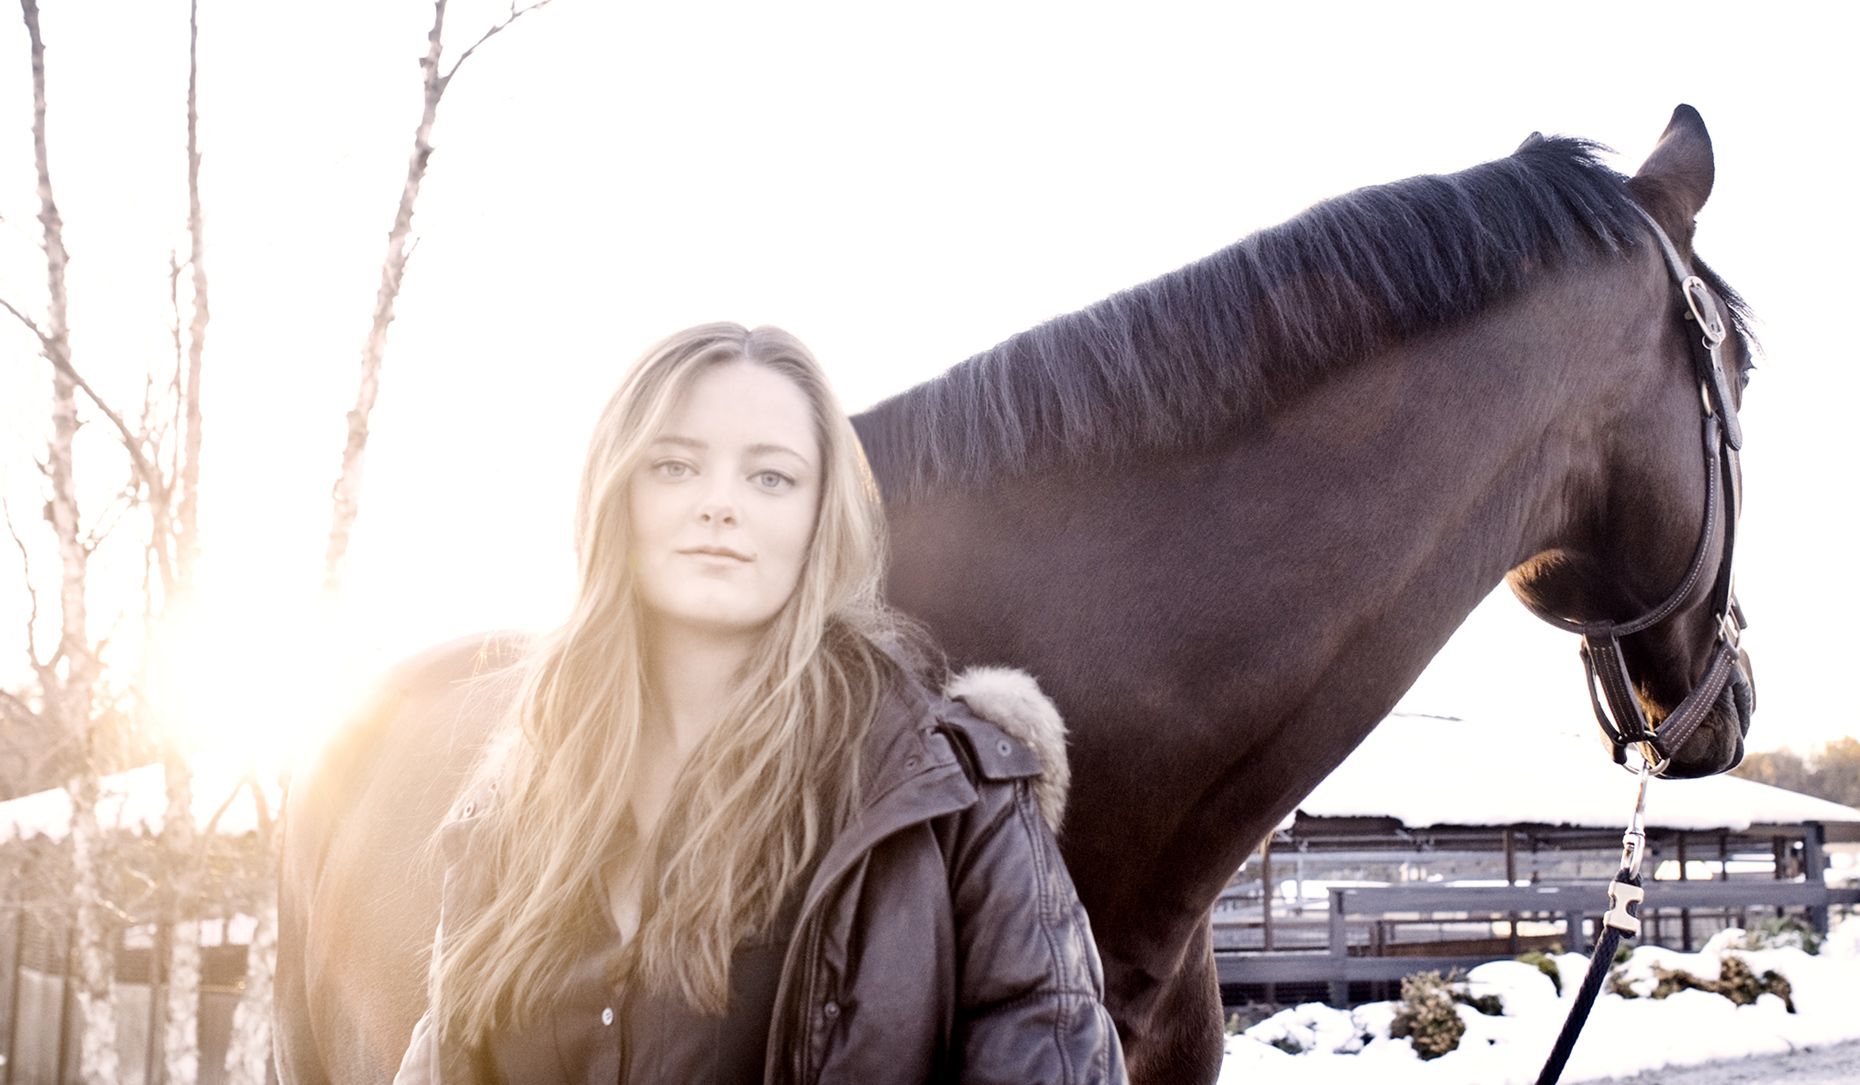 Los Angeles portrait Photography, Michael Brian, pet, cat, lifestyle, Young female portrait with horse, sun flare